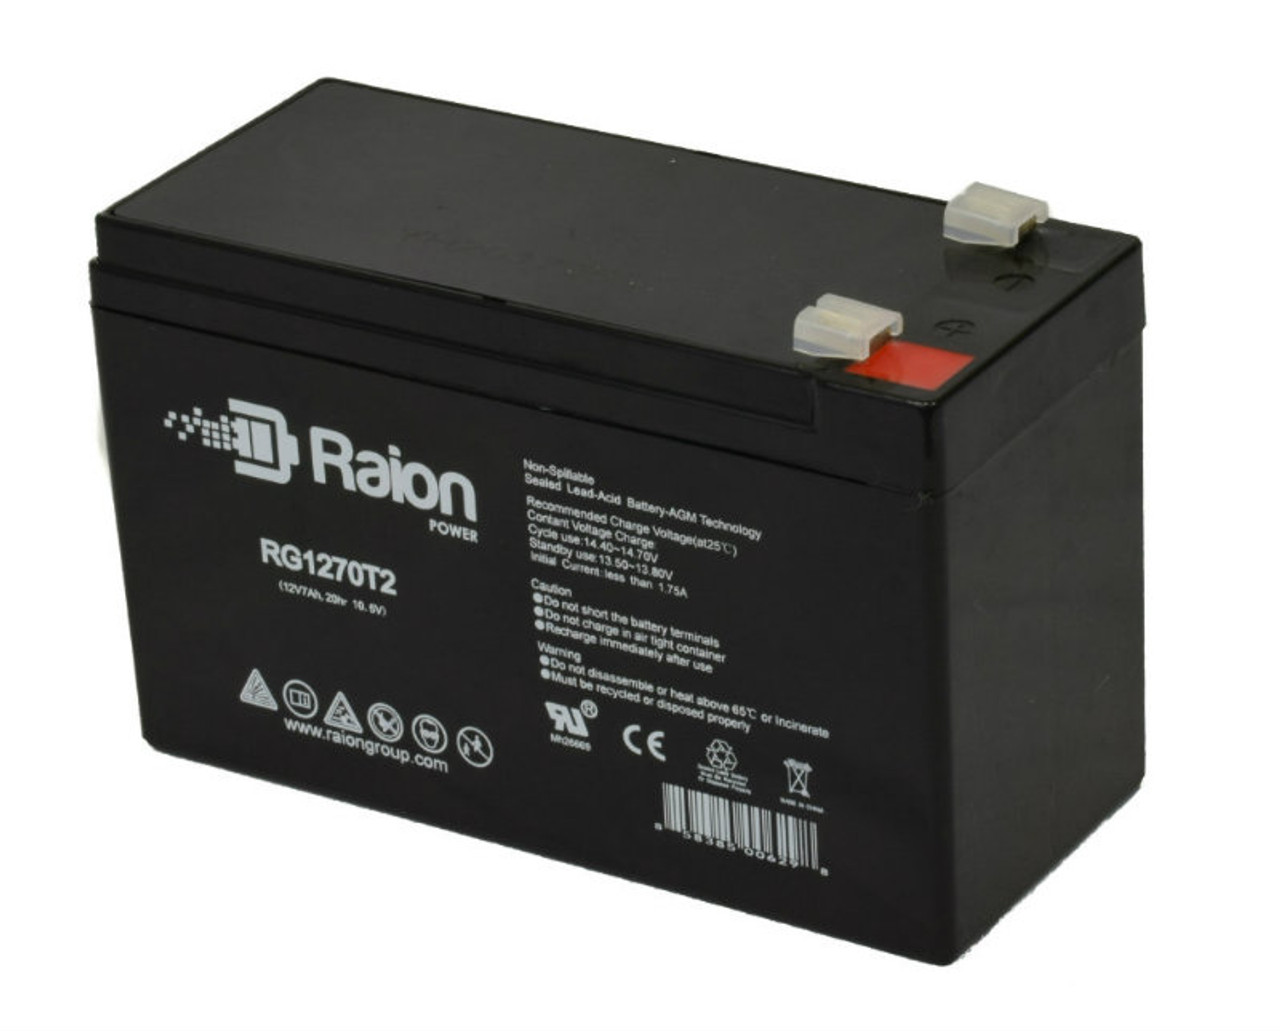 Raion Power RG1270T1 Replacement Battery for CooPower CP12-7.0